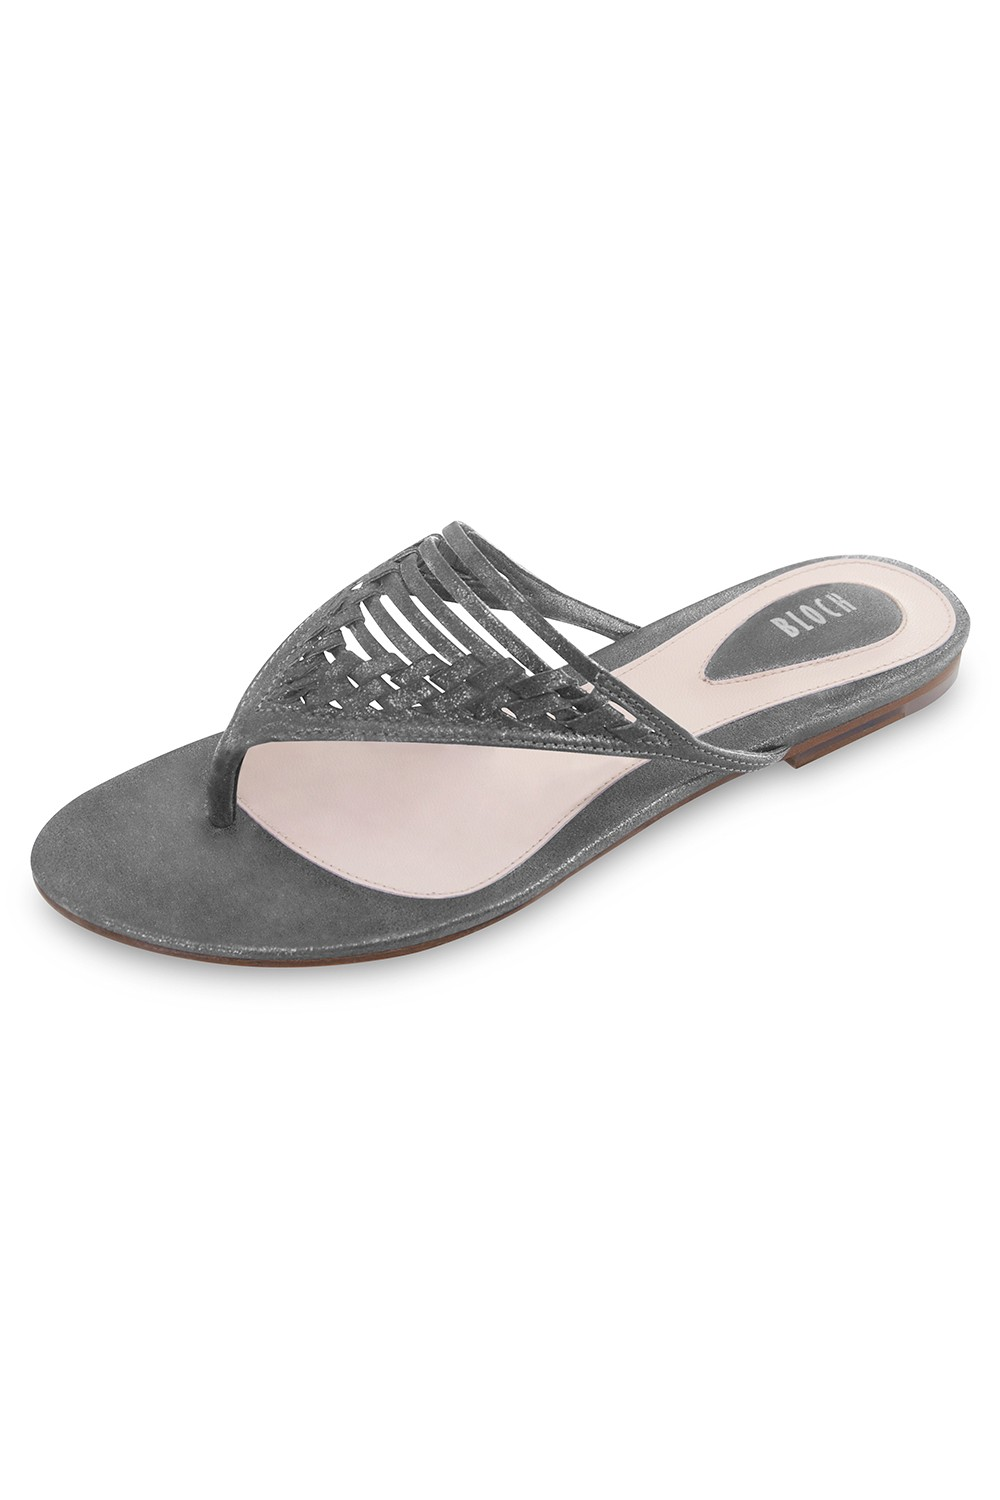 Loretta Womens Fashion Shoes